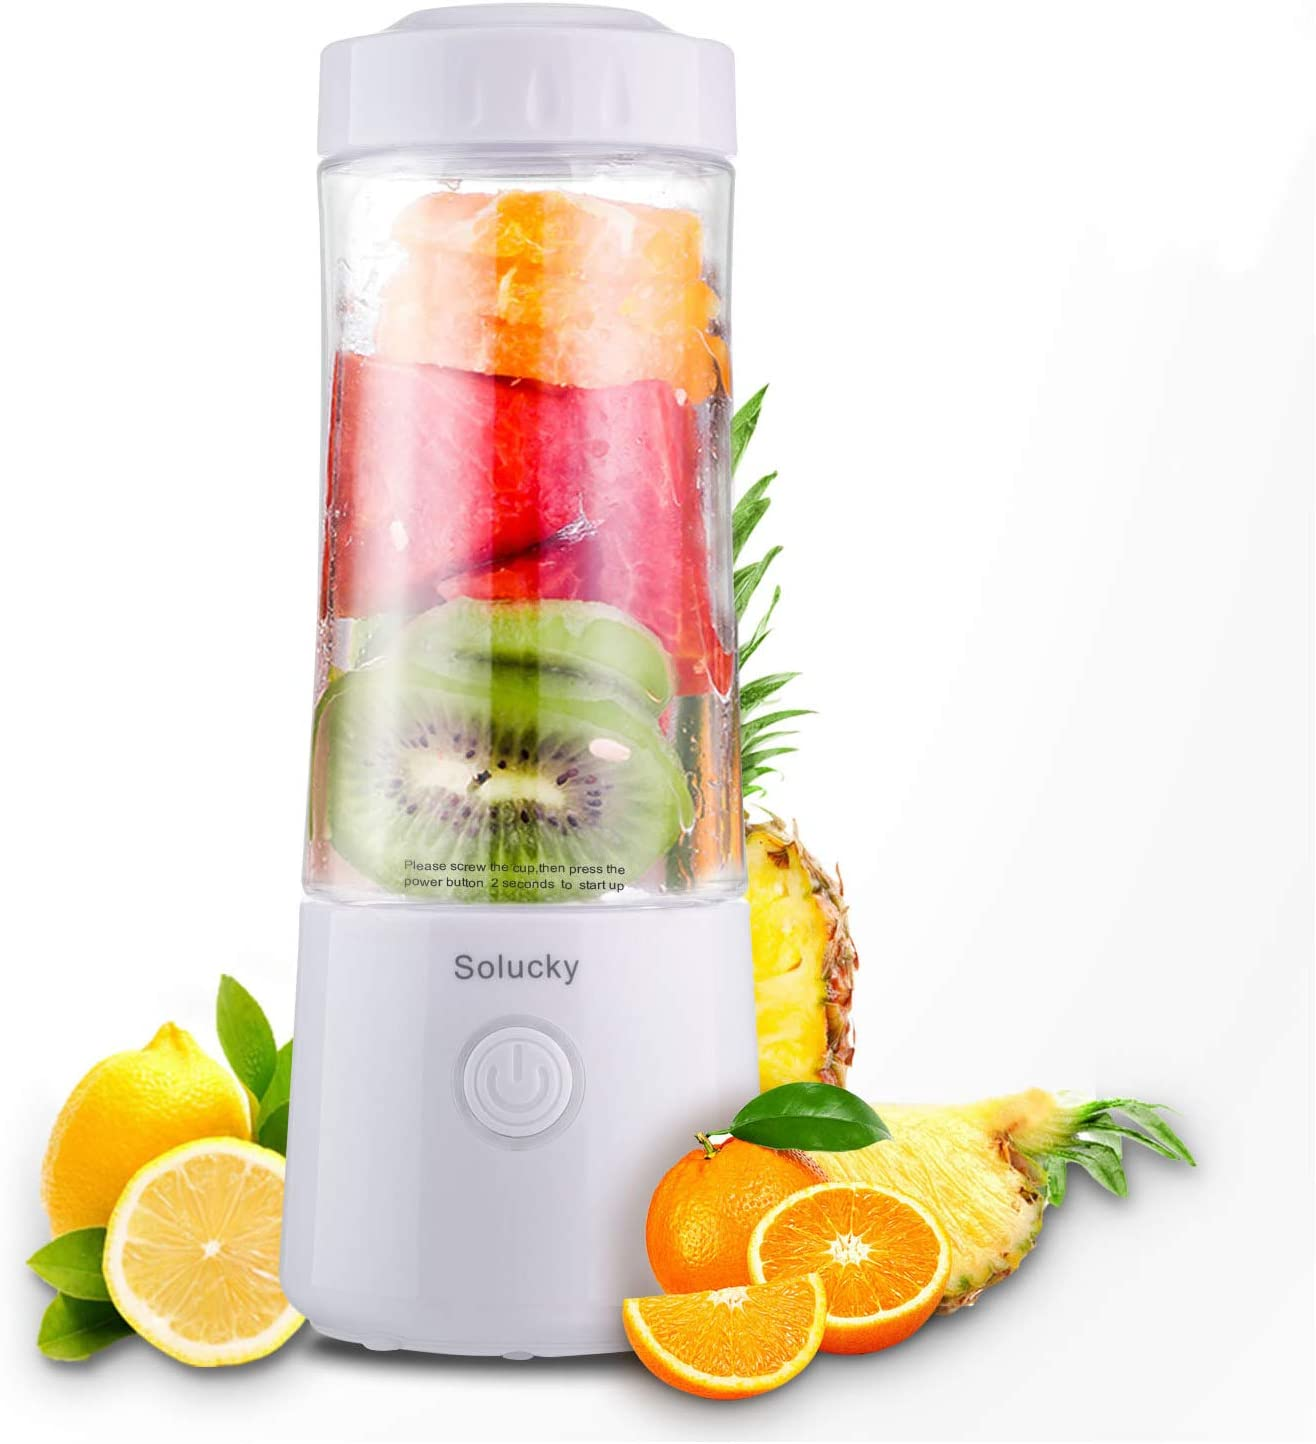 Solucky Portable Personal Blender,Usb Rechargeable Mixer for Smoothie,Mini Fruit Juicer, DIY Milk Shakes, 400ml, Six 3D Blades for Great Mixing(White)